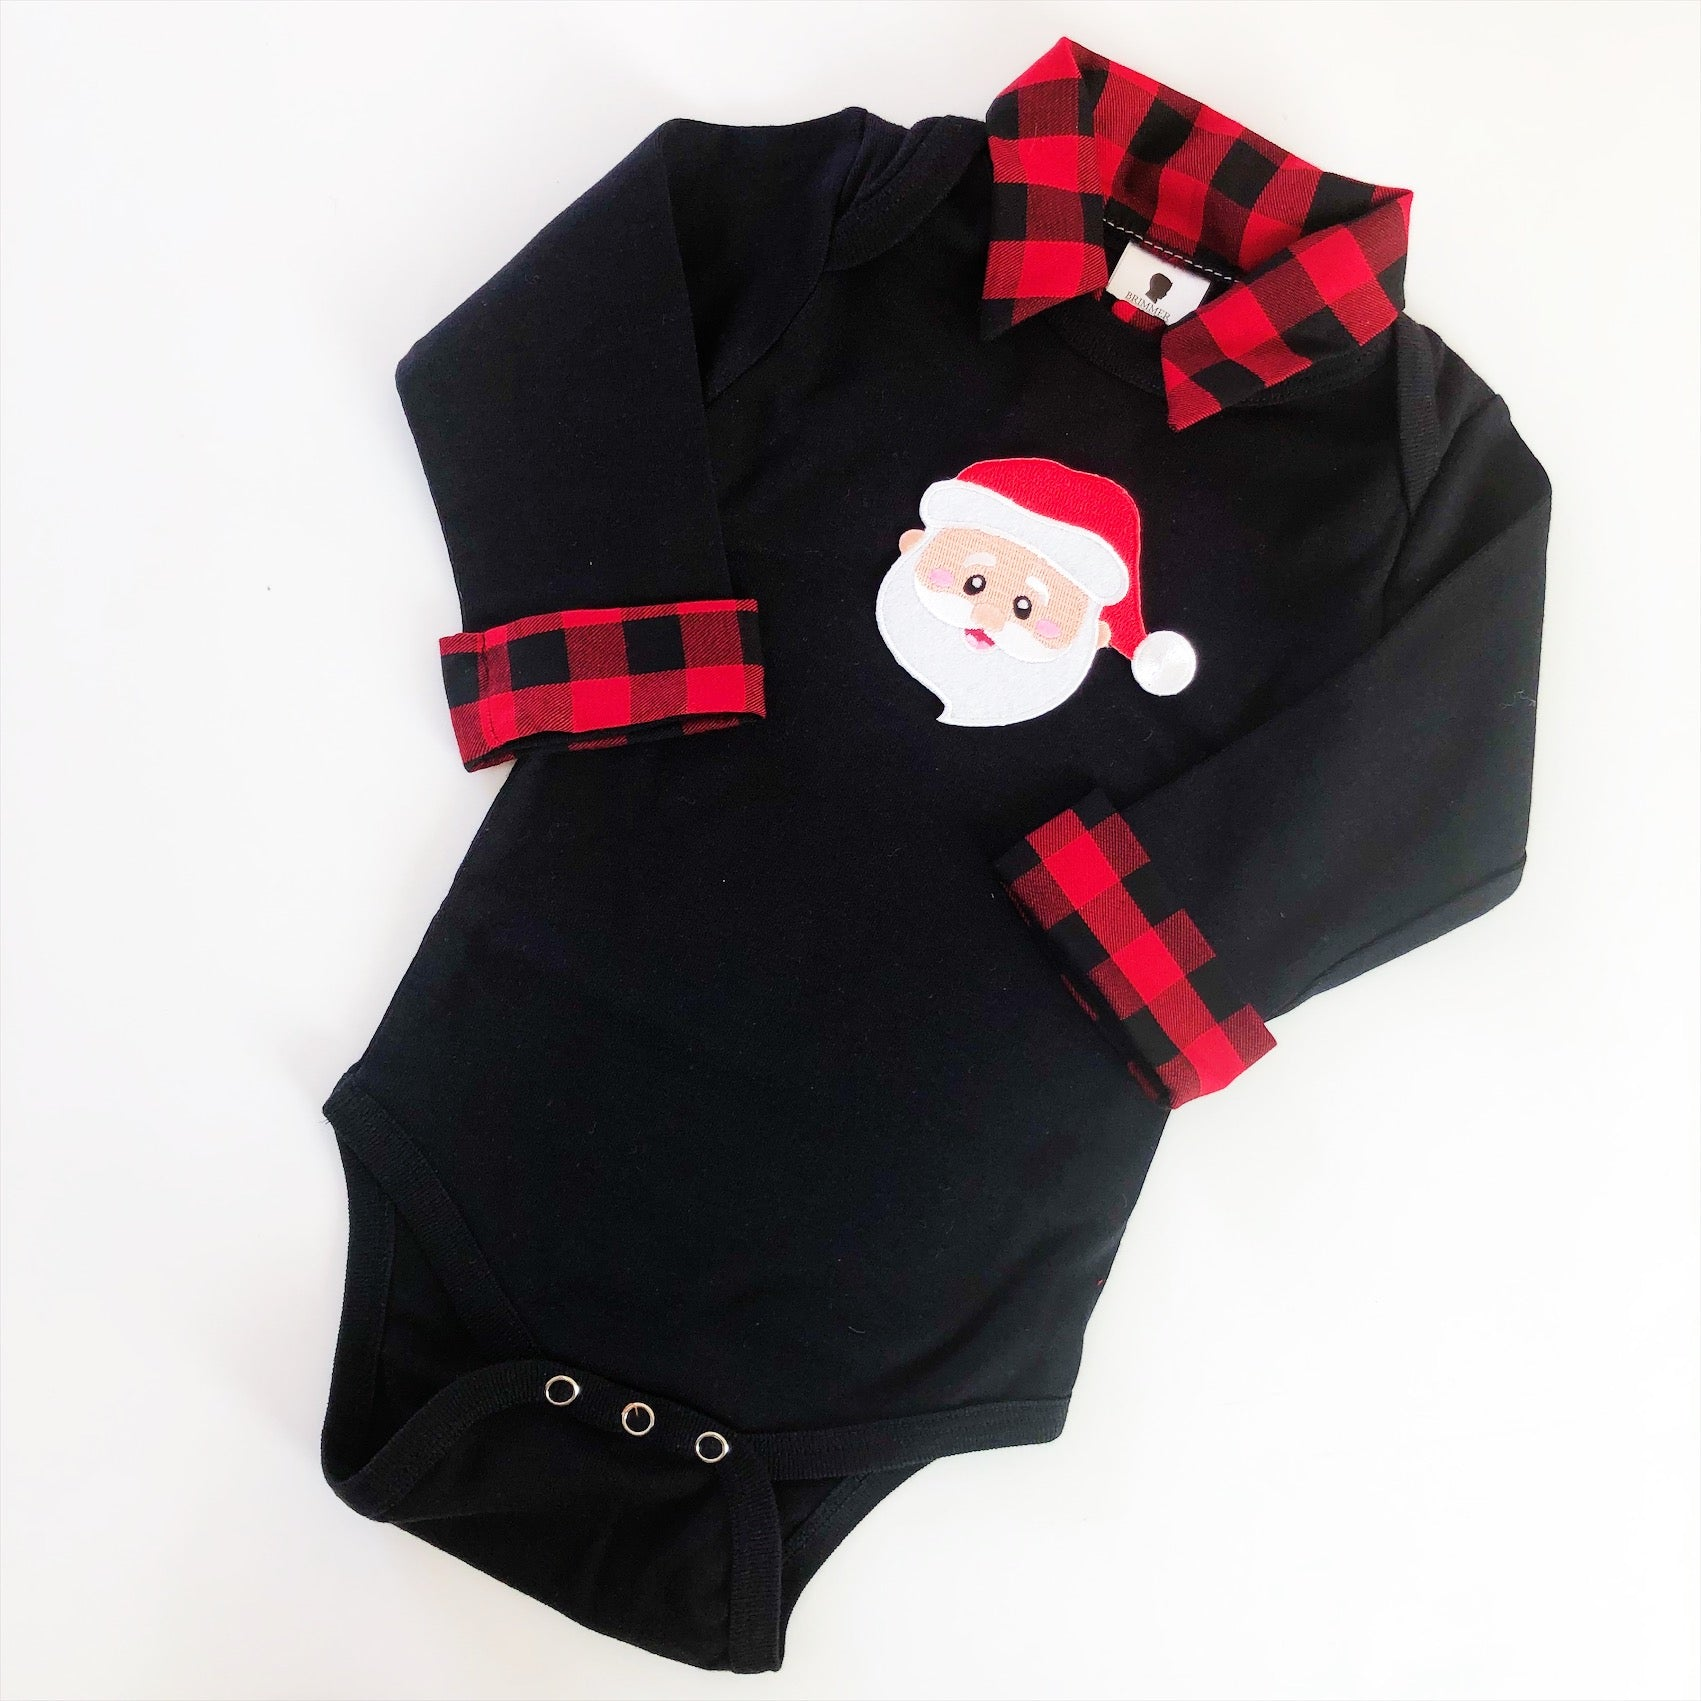 Santa Christmas Outfit - Baby Boy Christmas Outfit